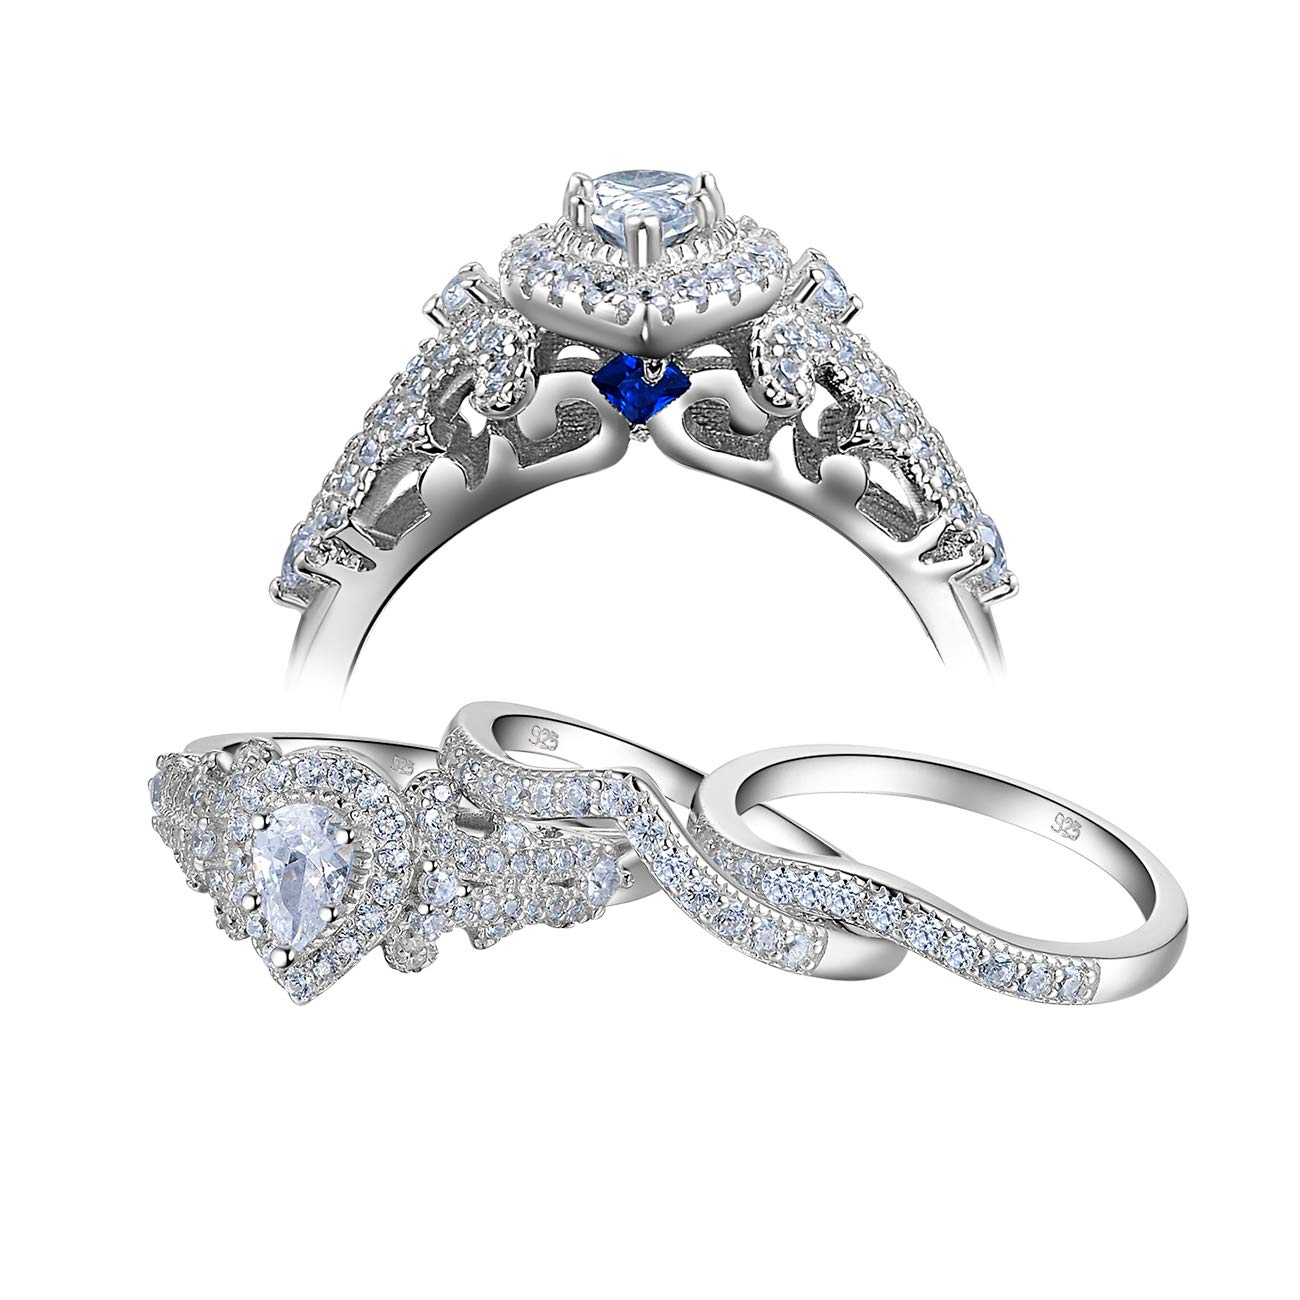 Newshe Wedding Engagement Ring Set for Women 925 Sterling Silver 3pcs 1.4Ct Pear White Cz Size 7 by Newshe Jewellery